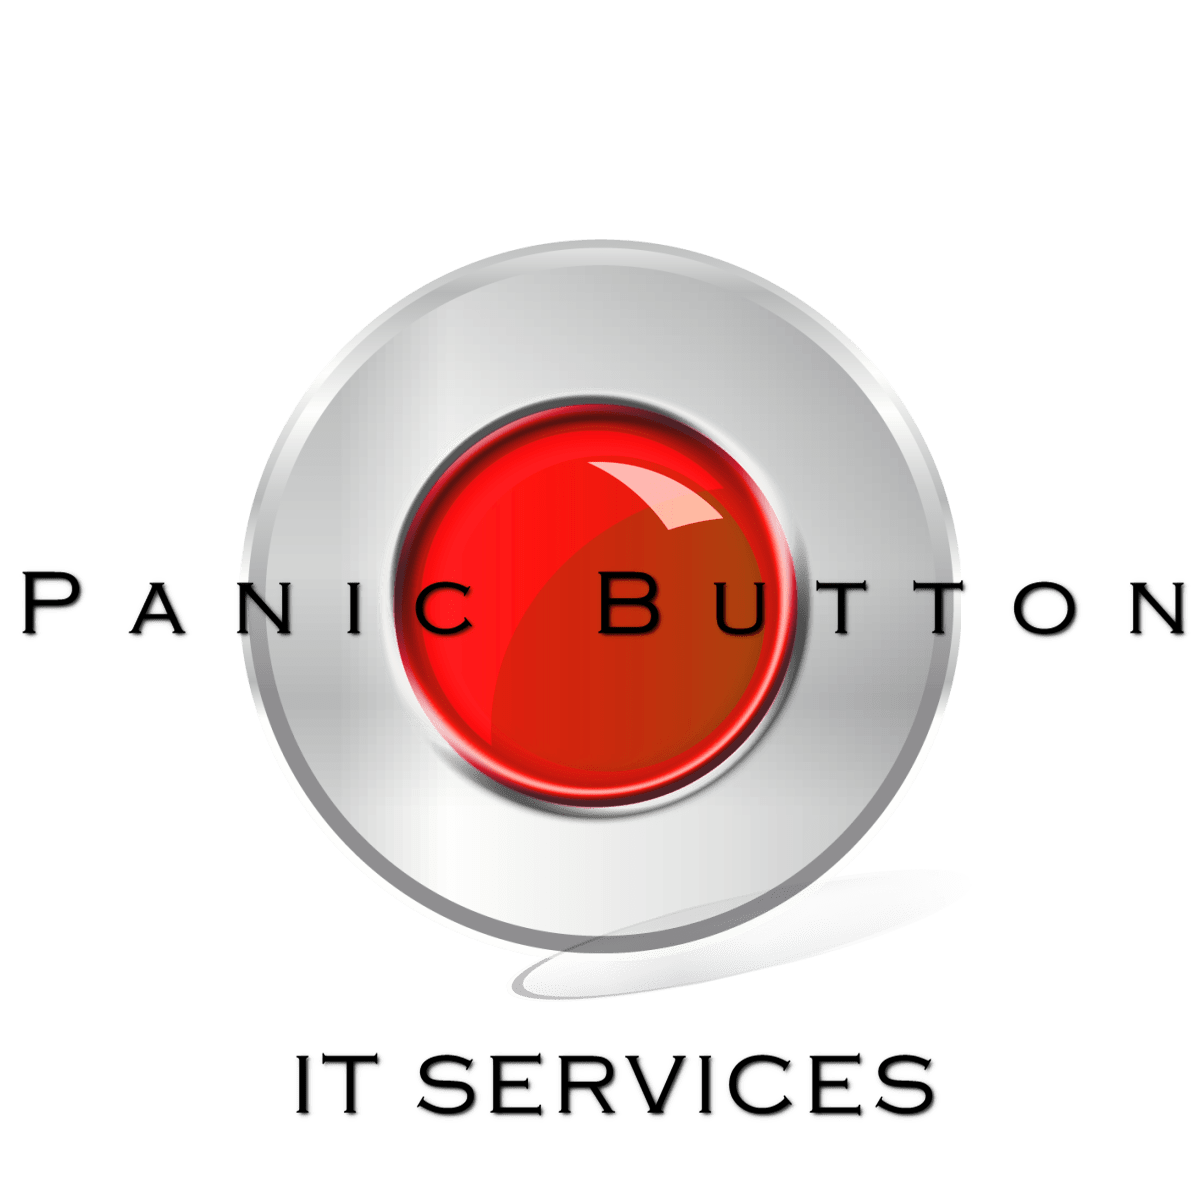 Panic Button, LLC